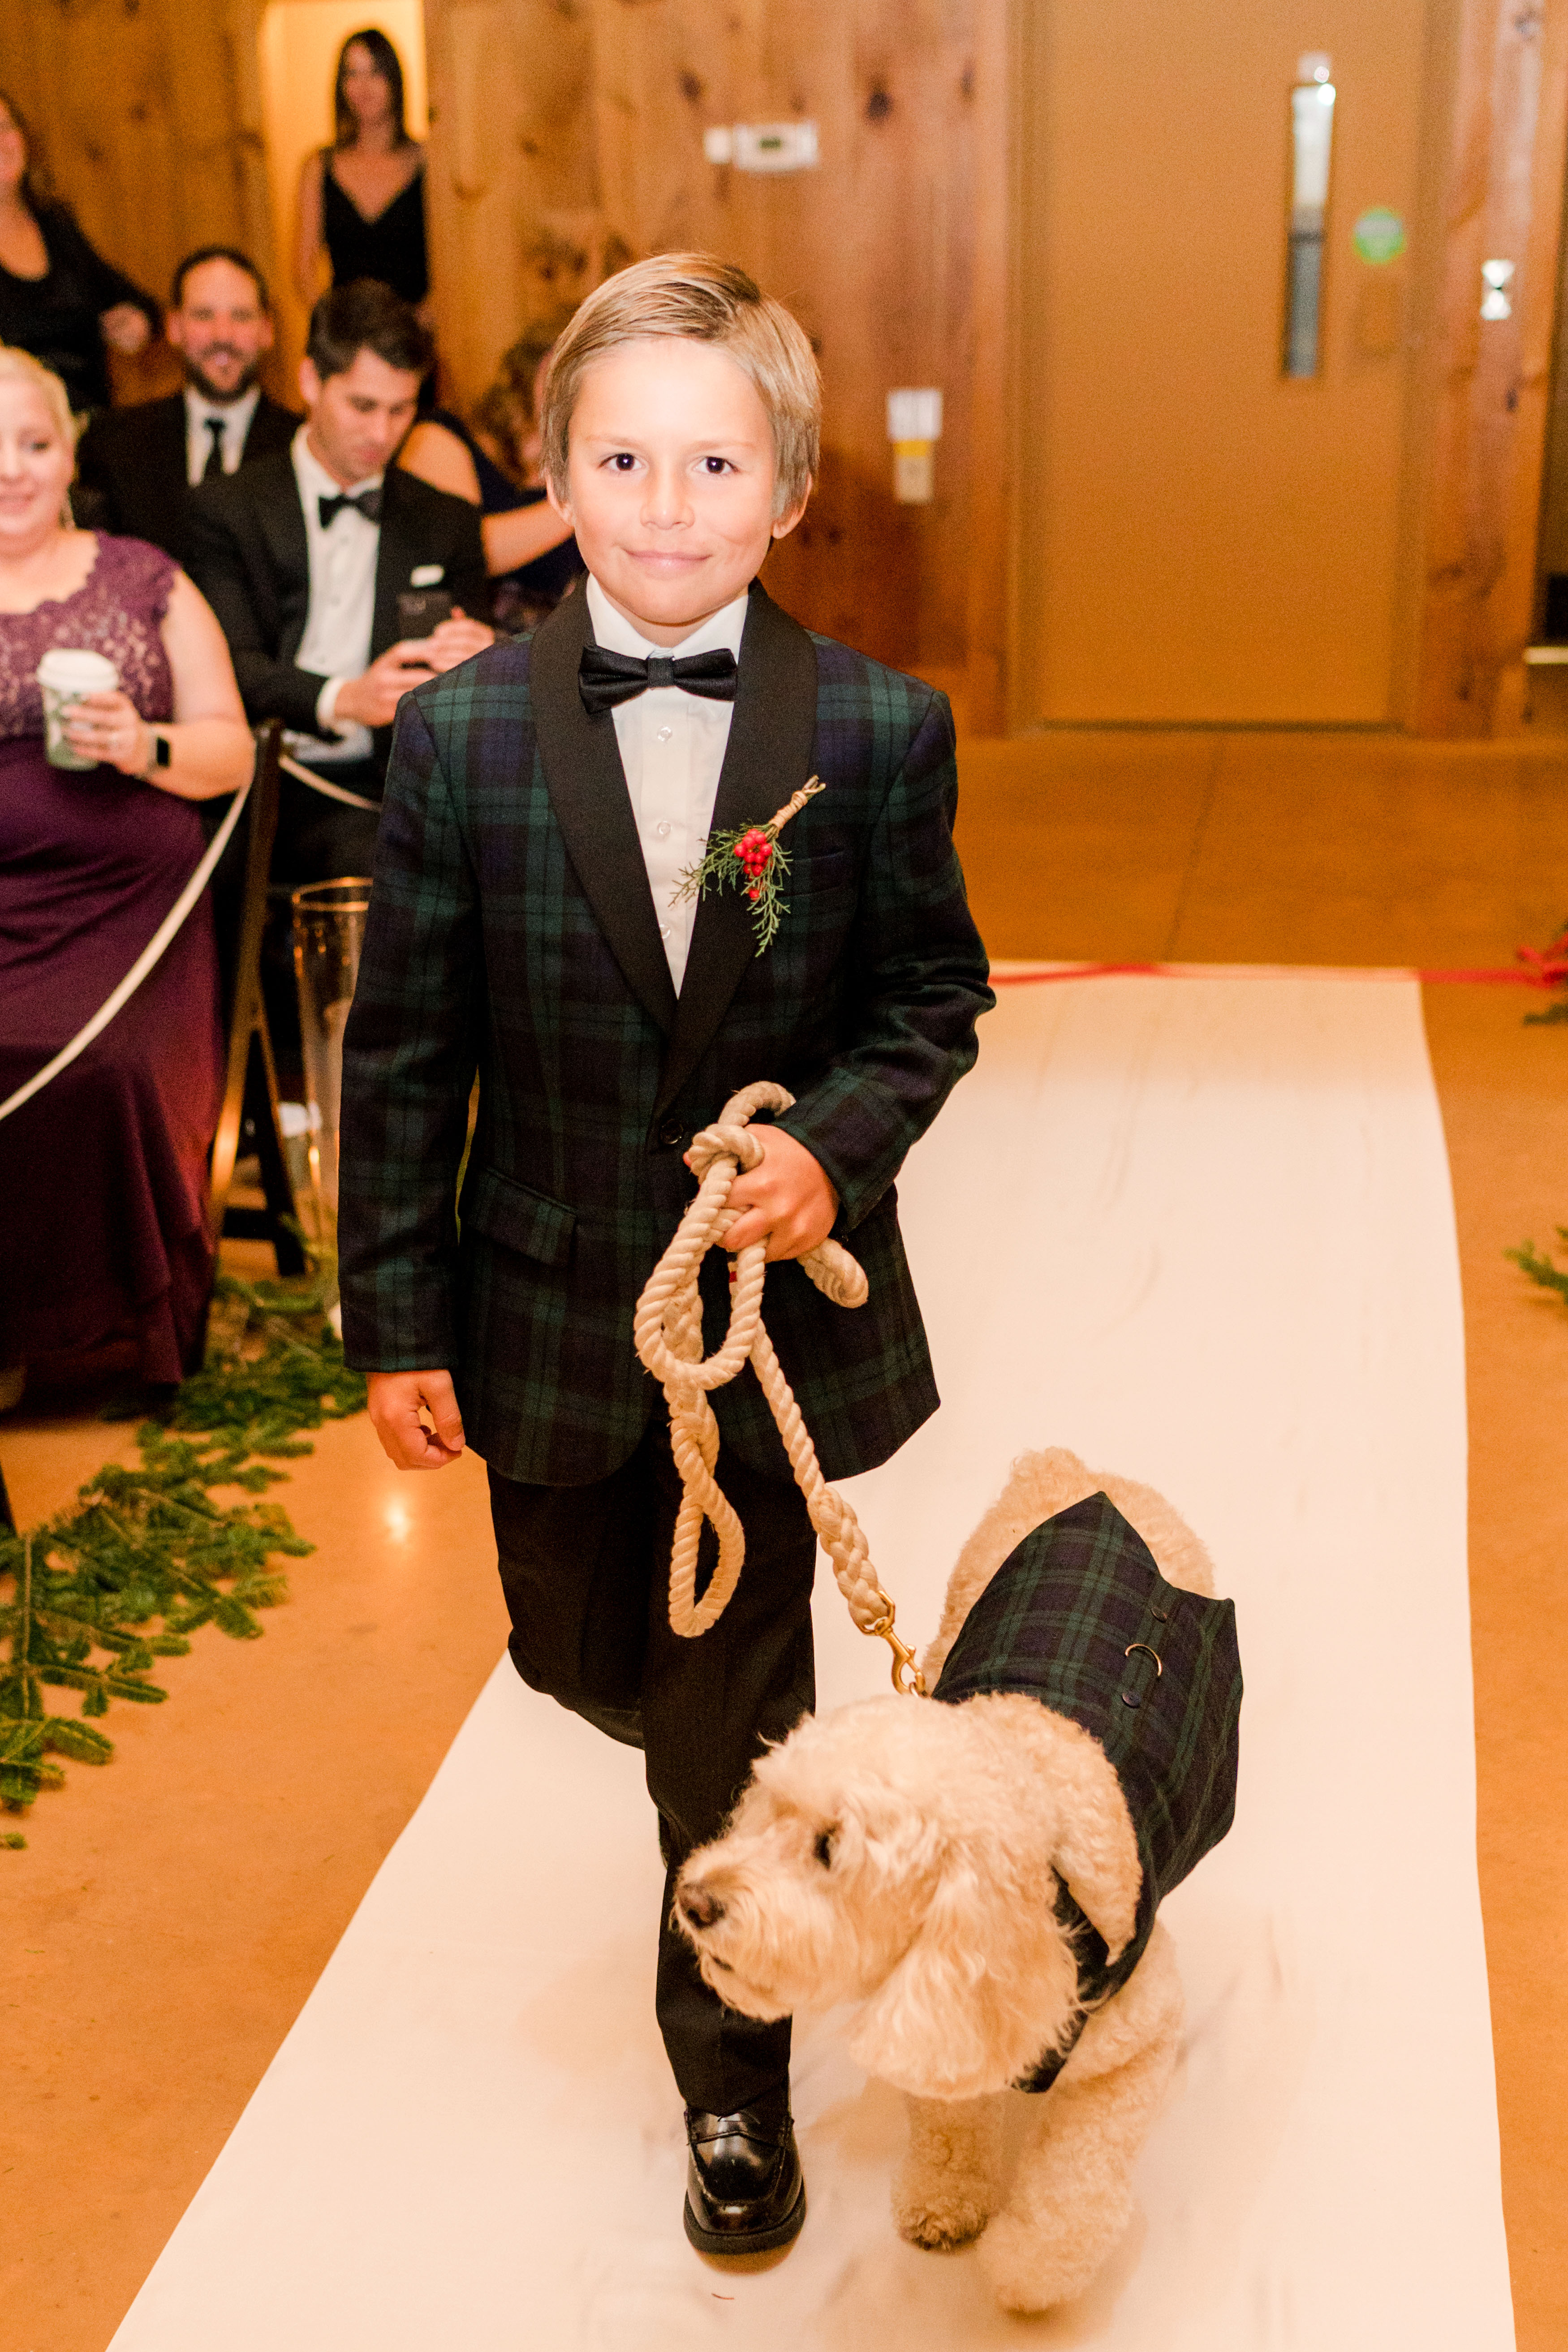 lauren christian christmas wedding ring bearer dog